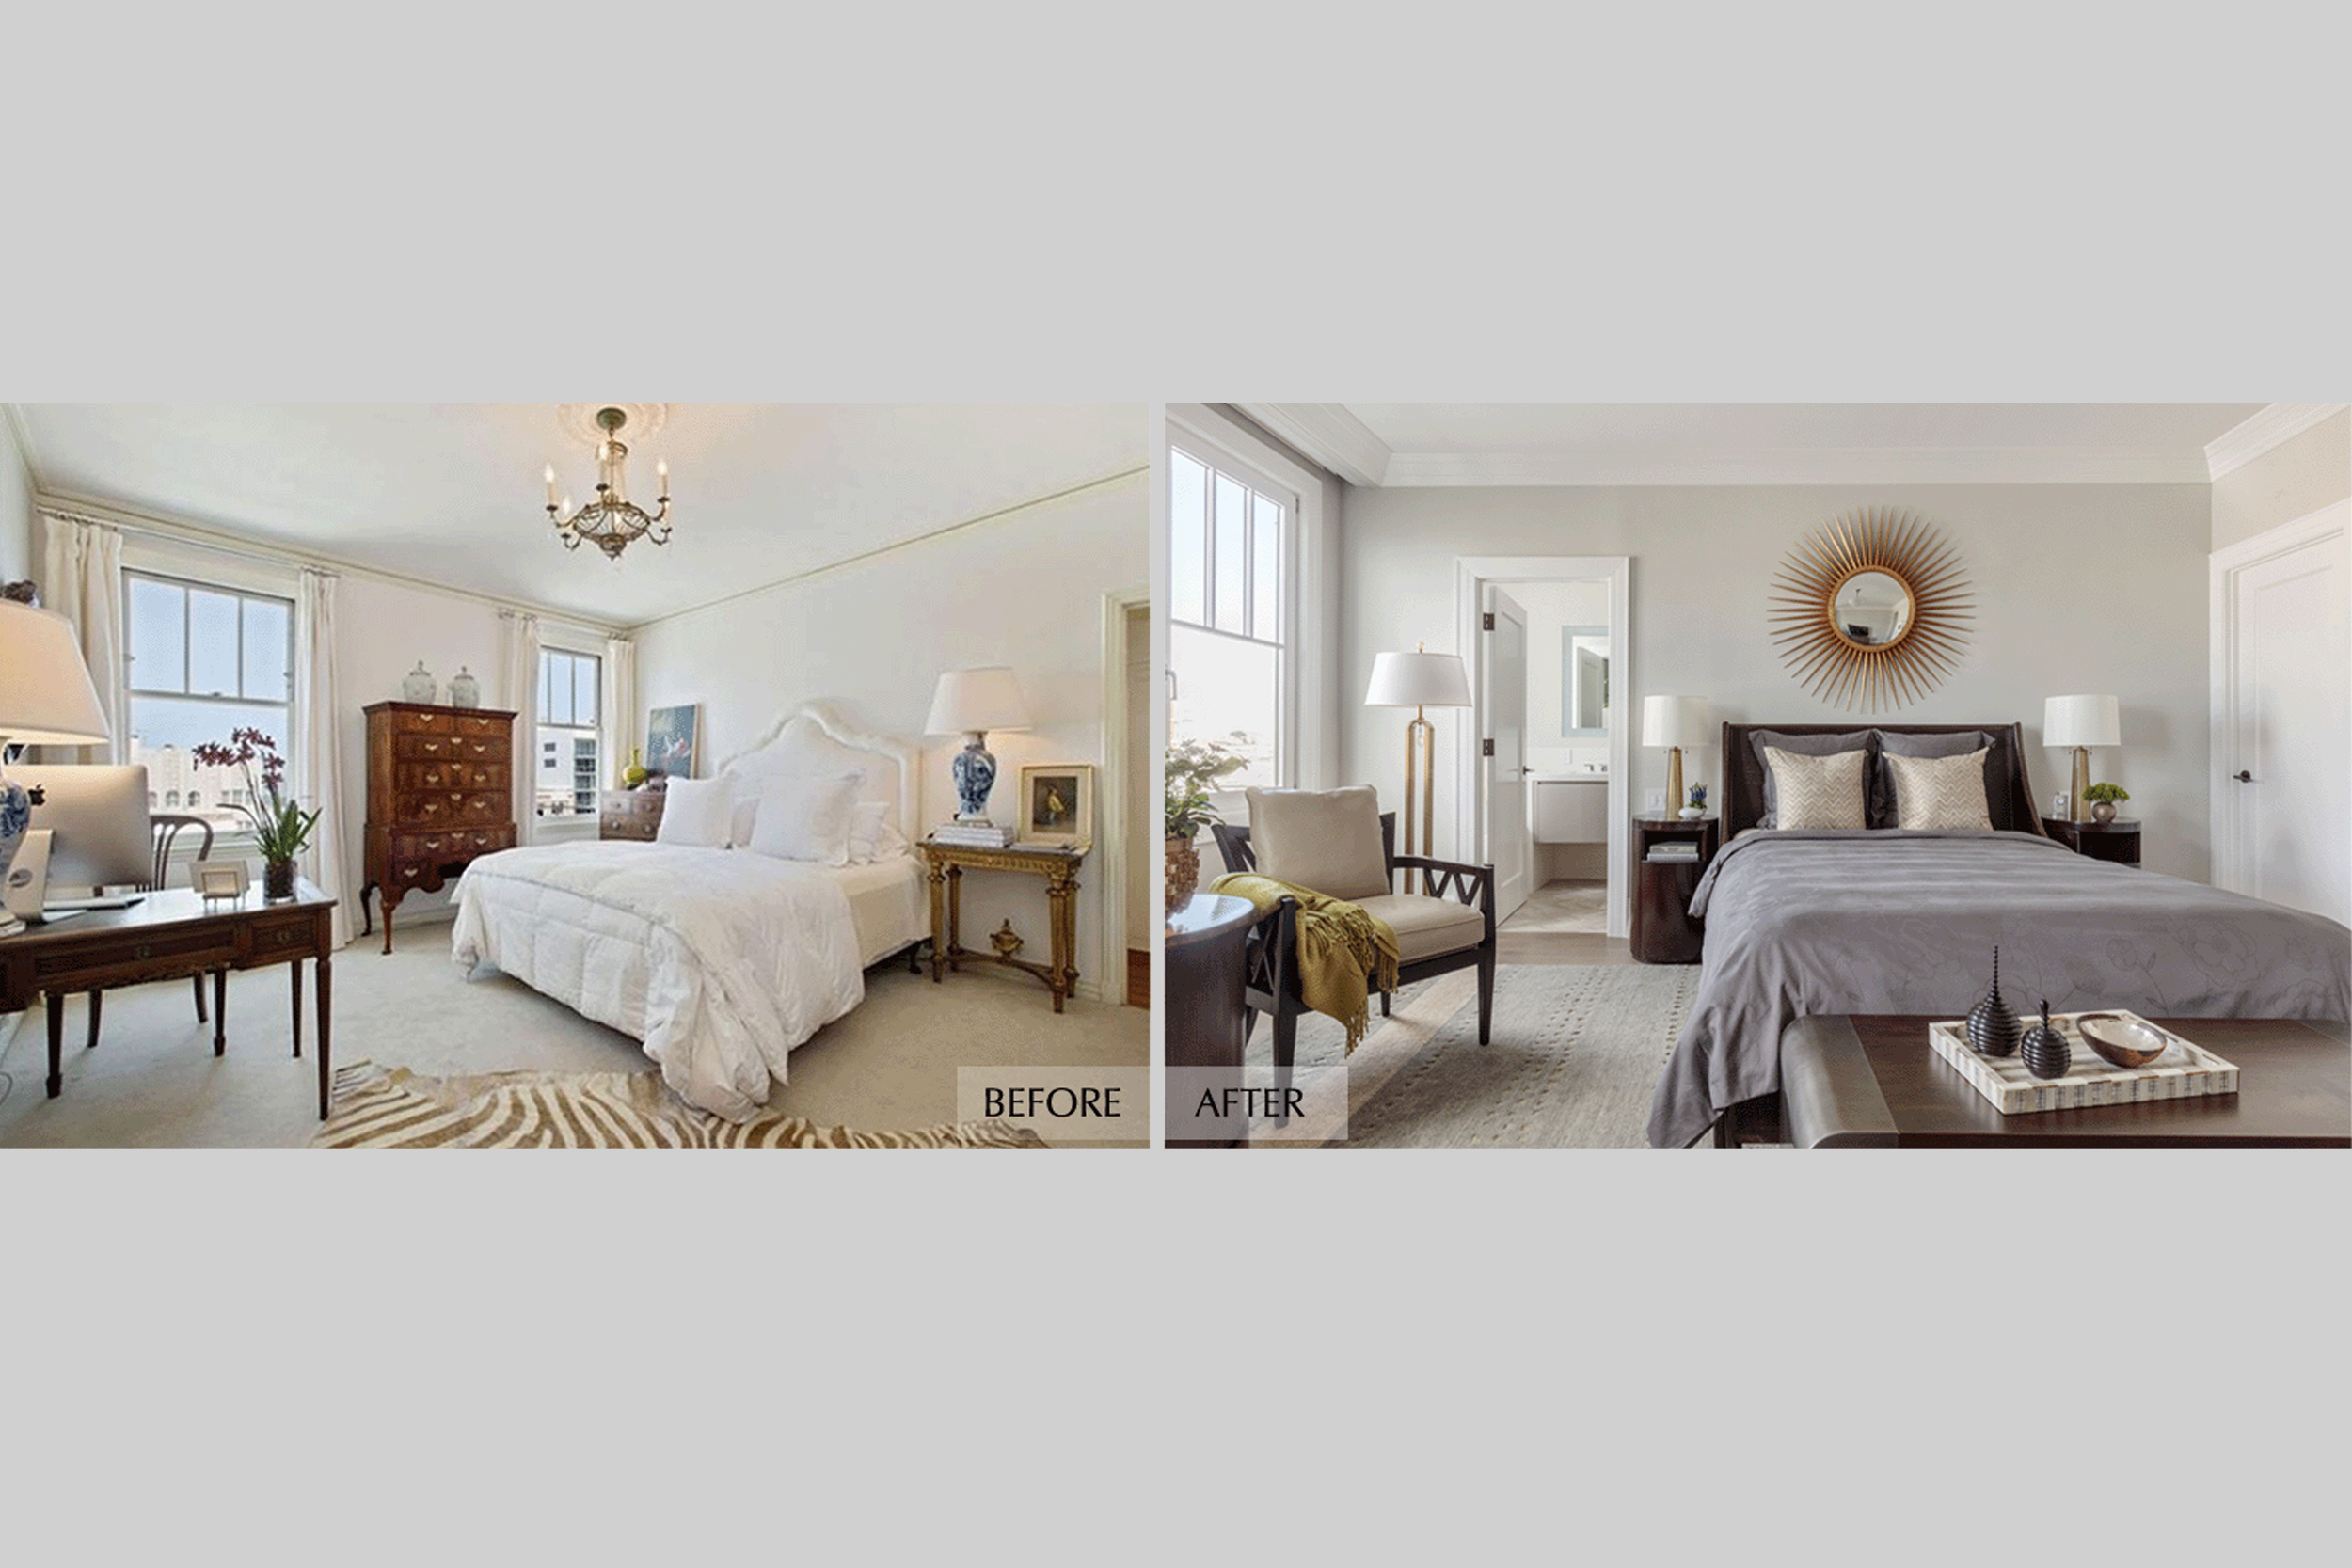 DESIGN415 | San Francisco Pacific Heights Before and After Master Bedroom Interior Design